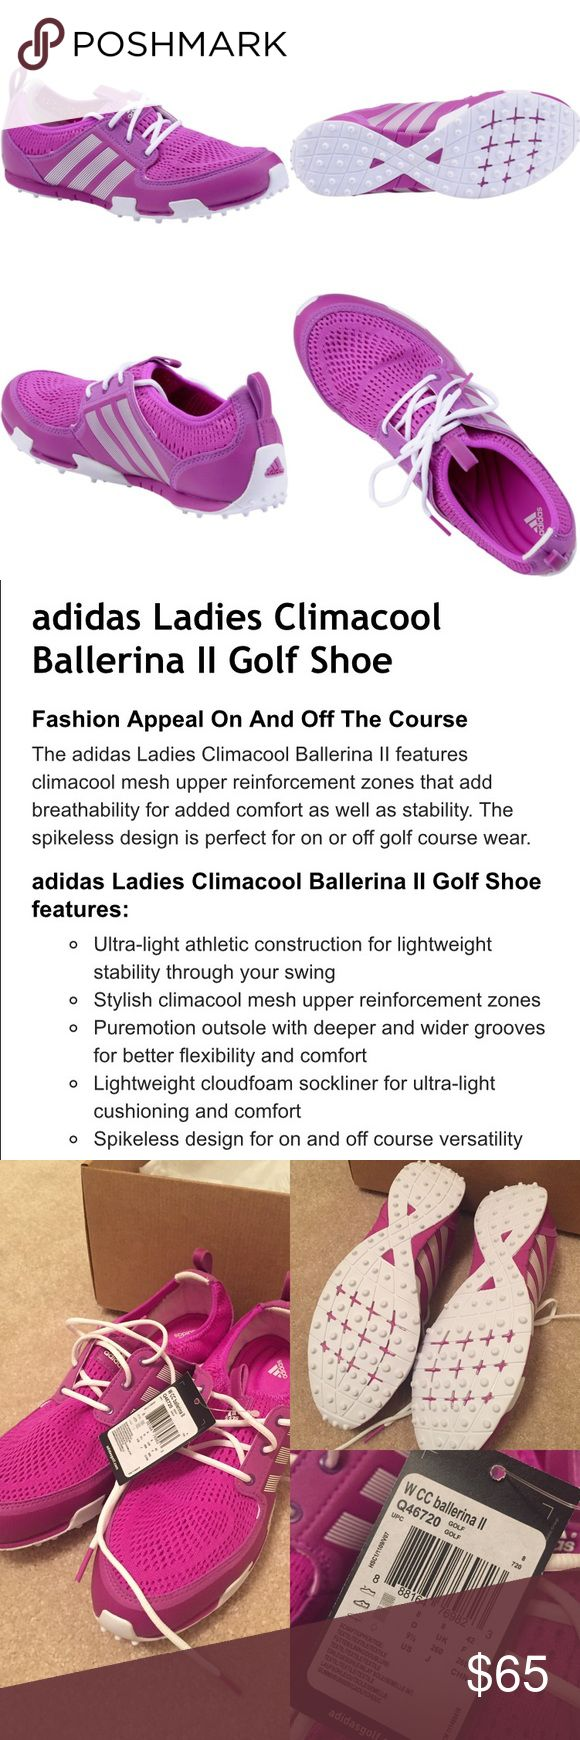 Adidas Ladies Climacool Ballerina II Golf Shoe pink & white. NWT! never been worn other than trying on (run smaller on my foot). Adidas Shoes